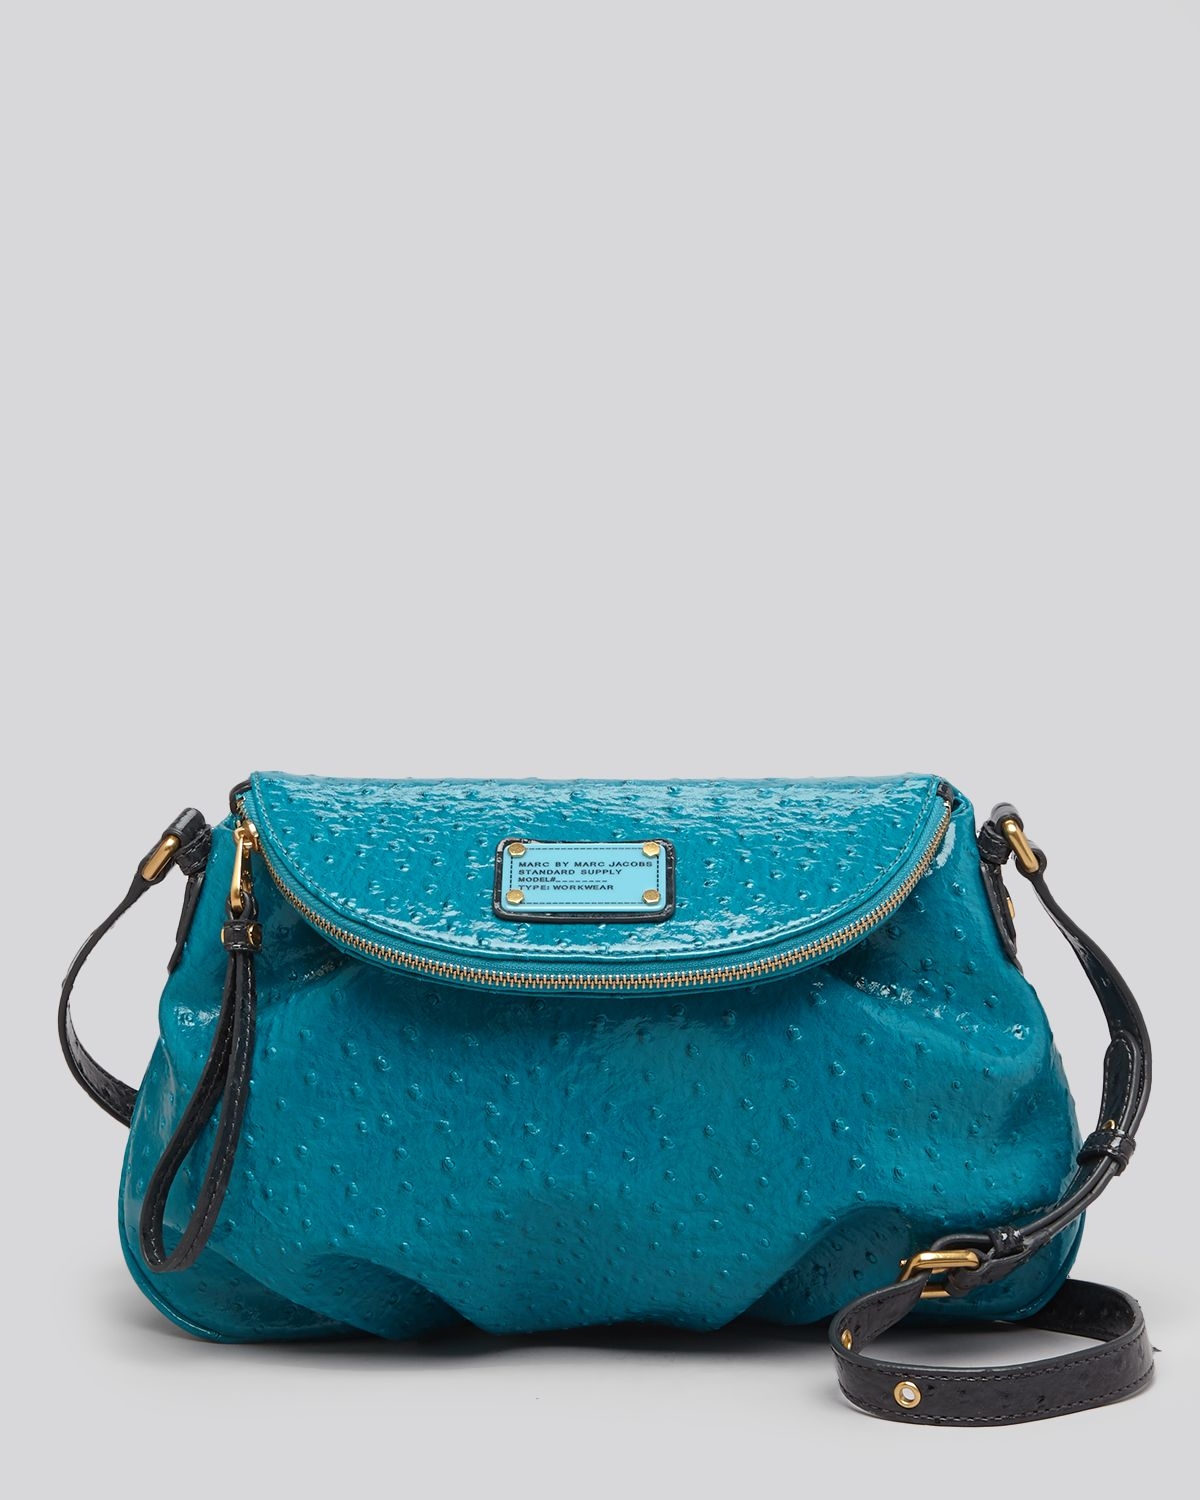 Marc by marc jacobs Crossbody Classic Q Patent Colorblock Natasha in ...